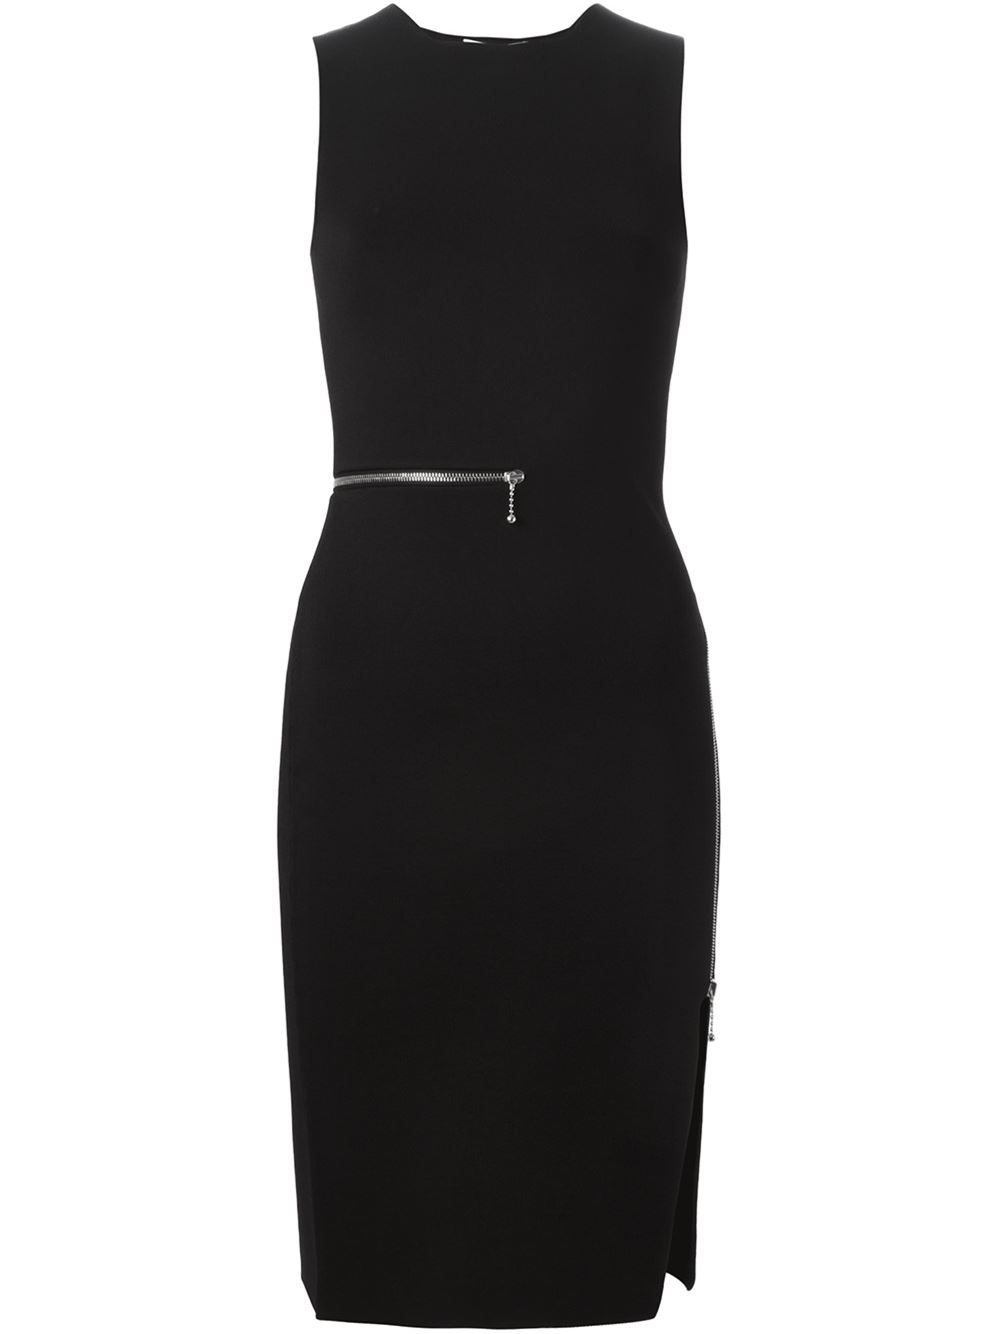 Alexander Wang Zip Detailed Dress - Les Market - Farfetch.com